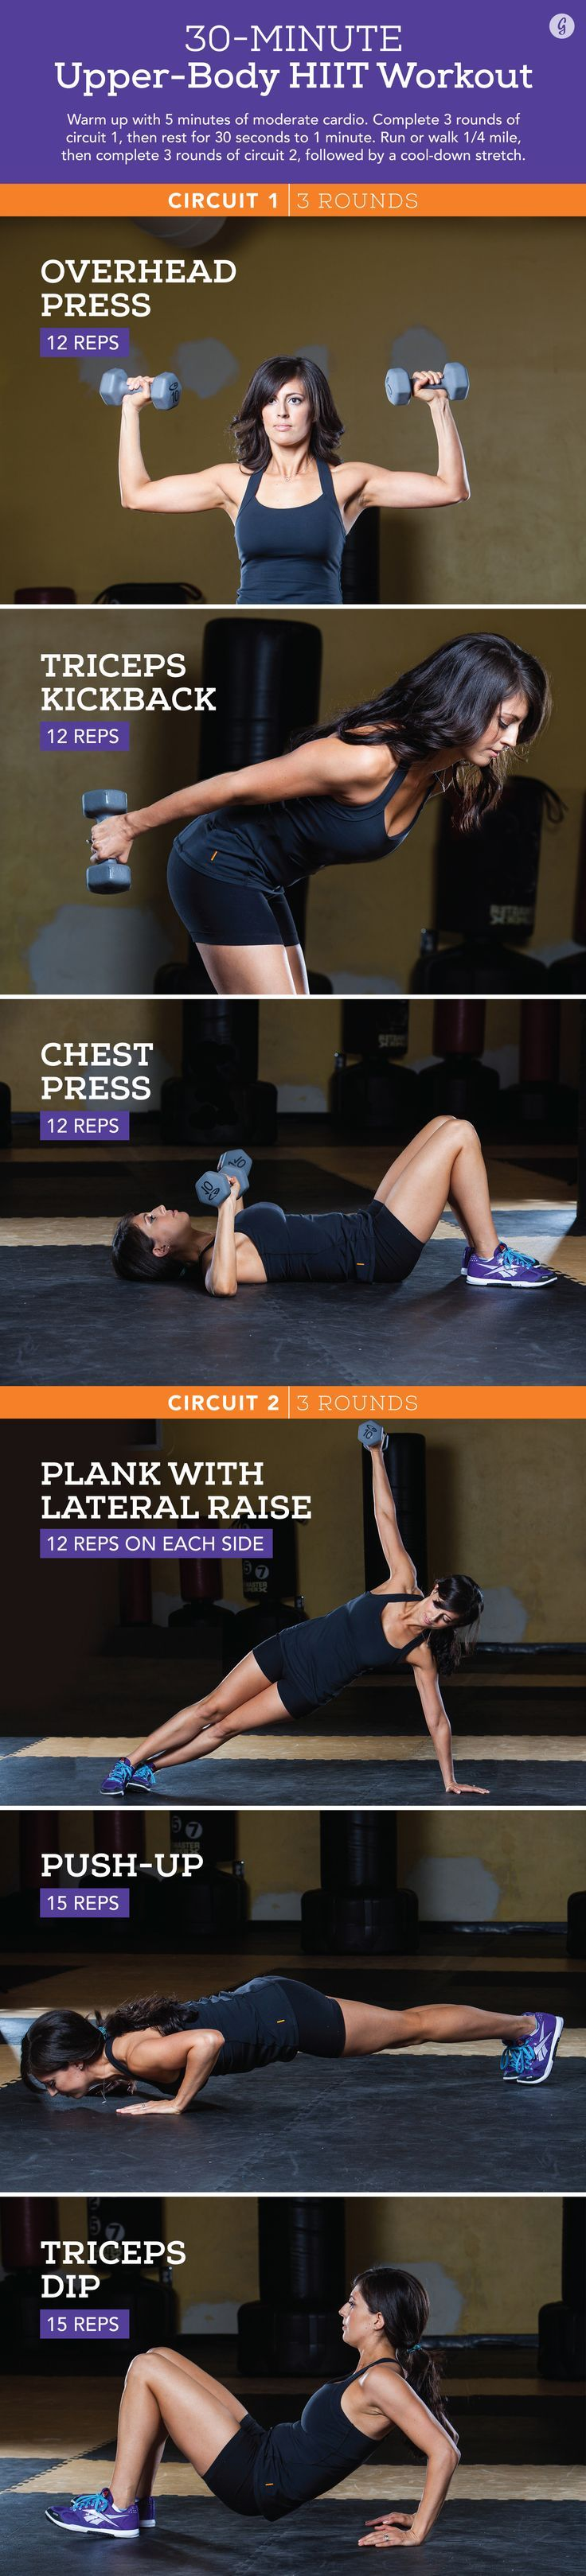 best upper body hiit workouts images on pinterest arm workouts